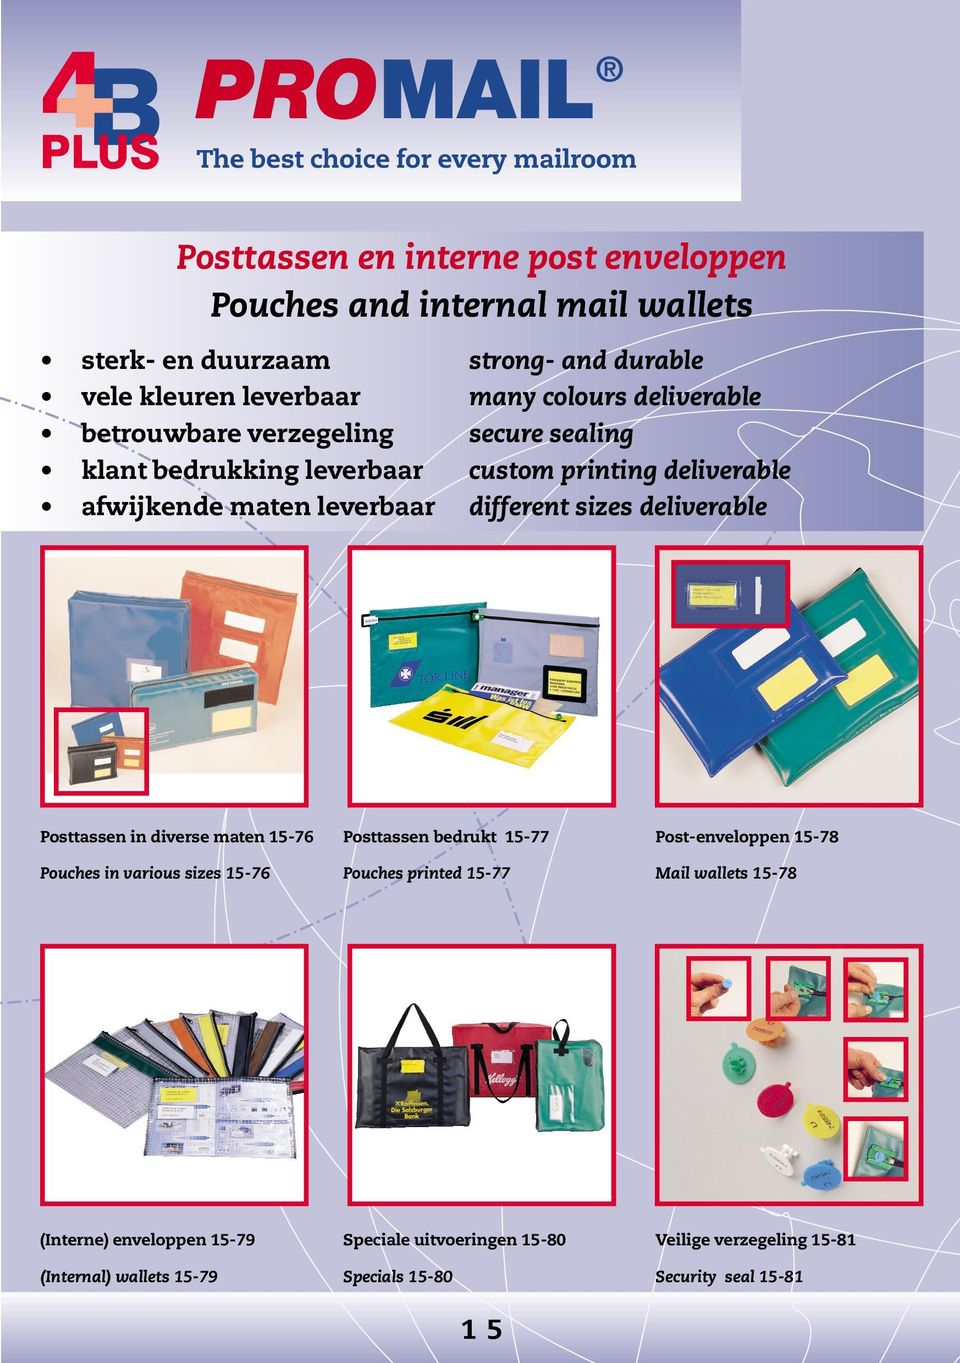 deliverable Posttassen in diverse maten 15-76 Posttassen bedrukt 15-77 Post-enveloppen 15-78 Pouches in various sizes 15-76 Pouches printed 15-77 Mail